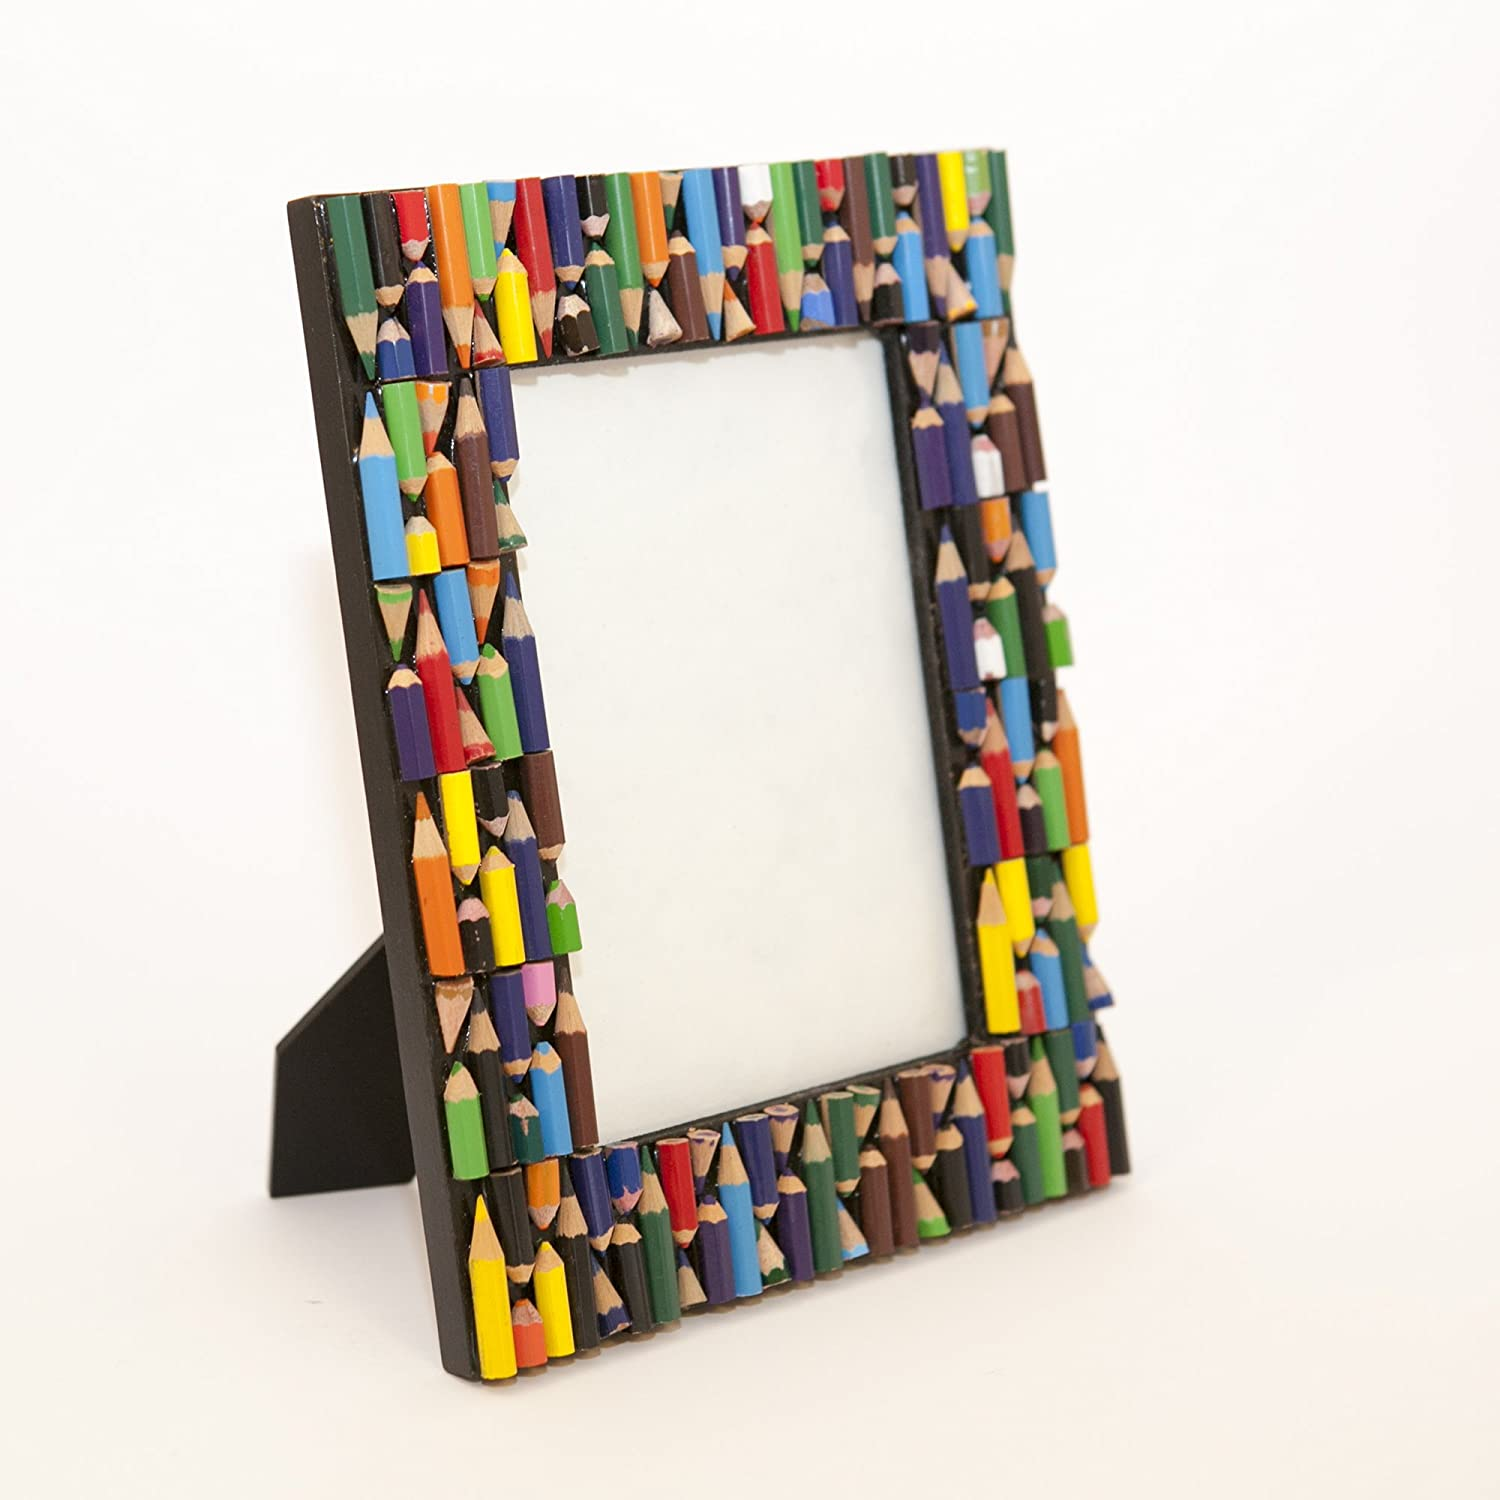 Amazon photo frame recycled pencils hand crafted frame amazon photo frame recycled pencils hand crafted frame by simply natural bliss 7x5 in unique picture frame for horizontal or vertical pictures jeuxipadfo Image collections